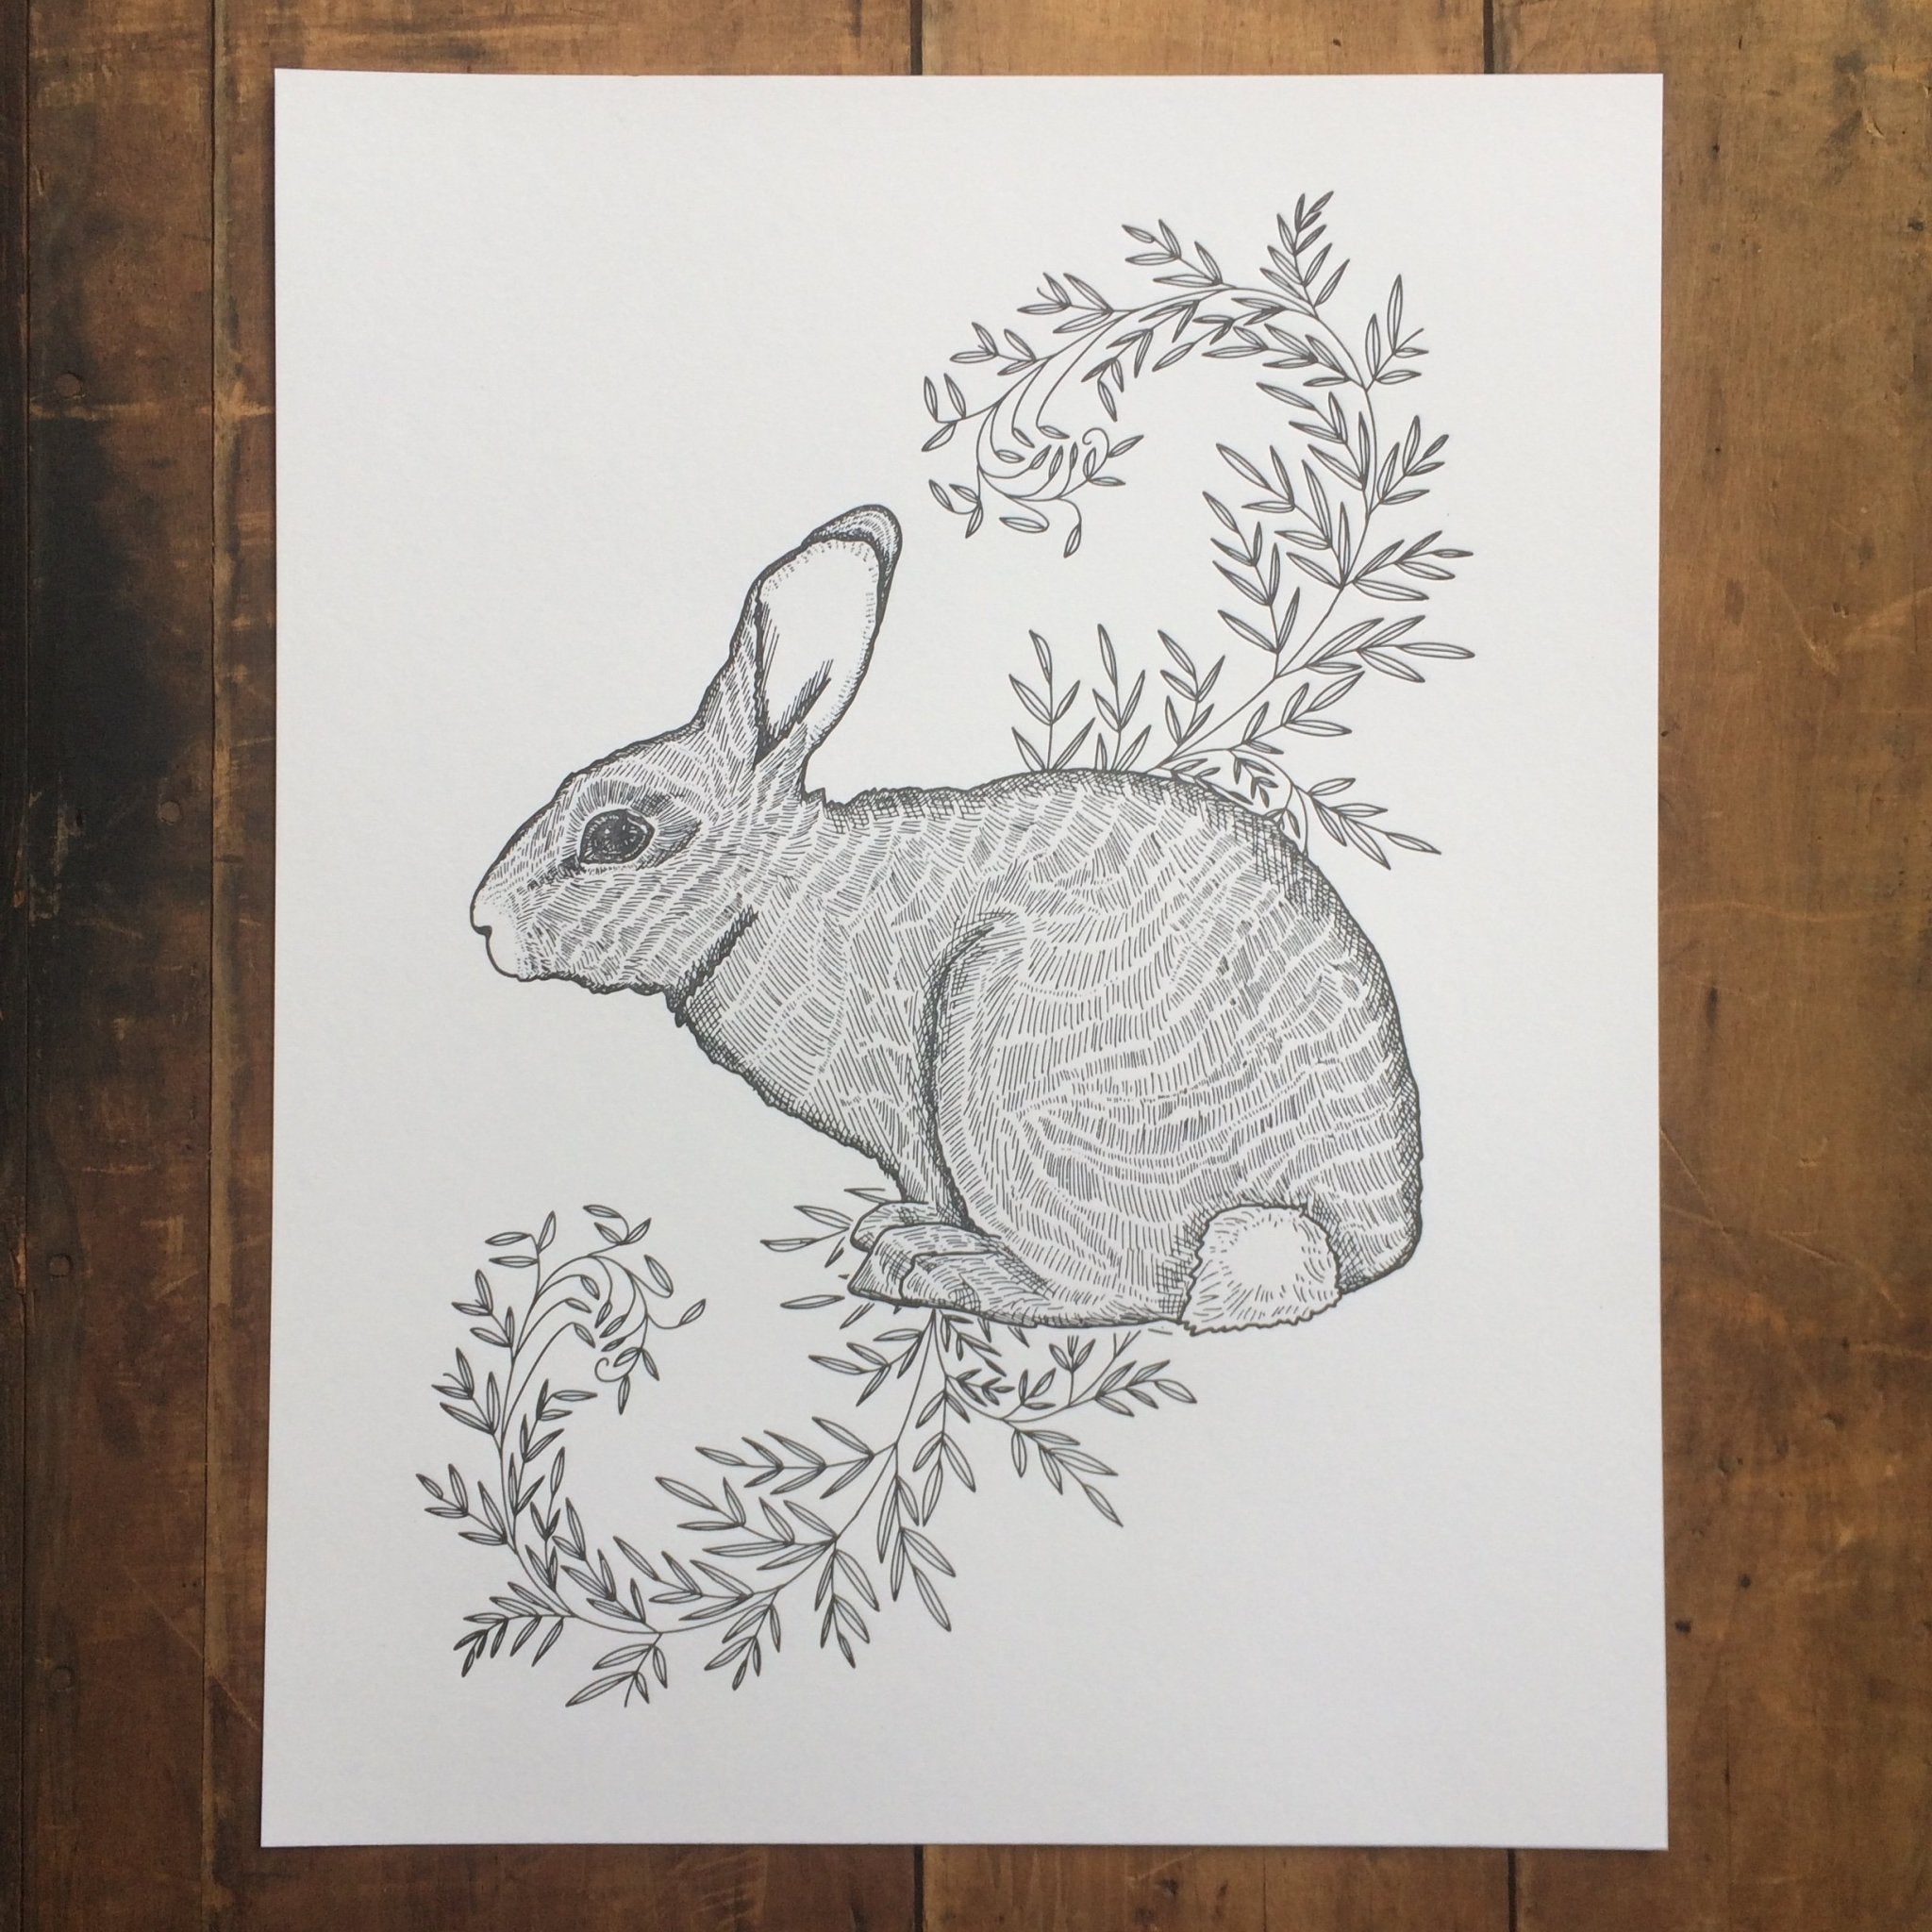 Rabbit with Vines Letterpress Print 11x14 - Ratbee Press -Freehand Market